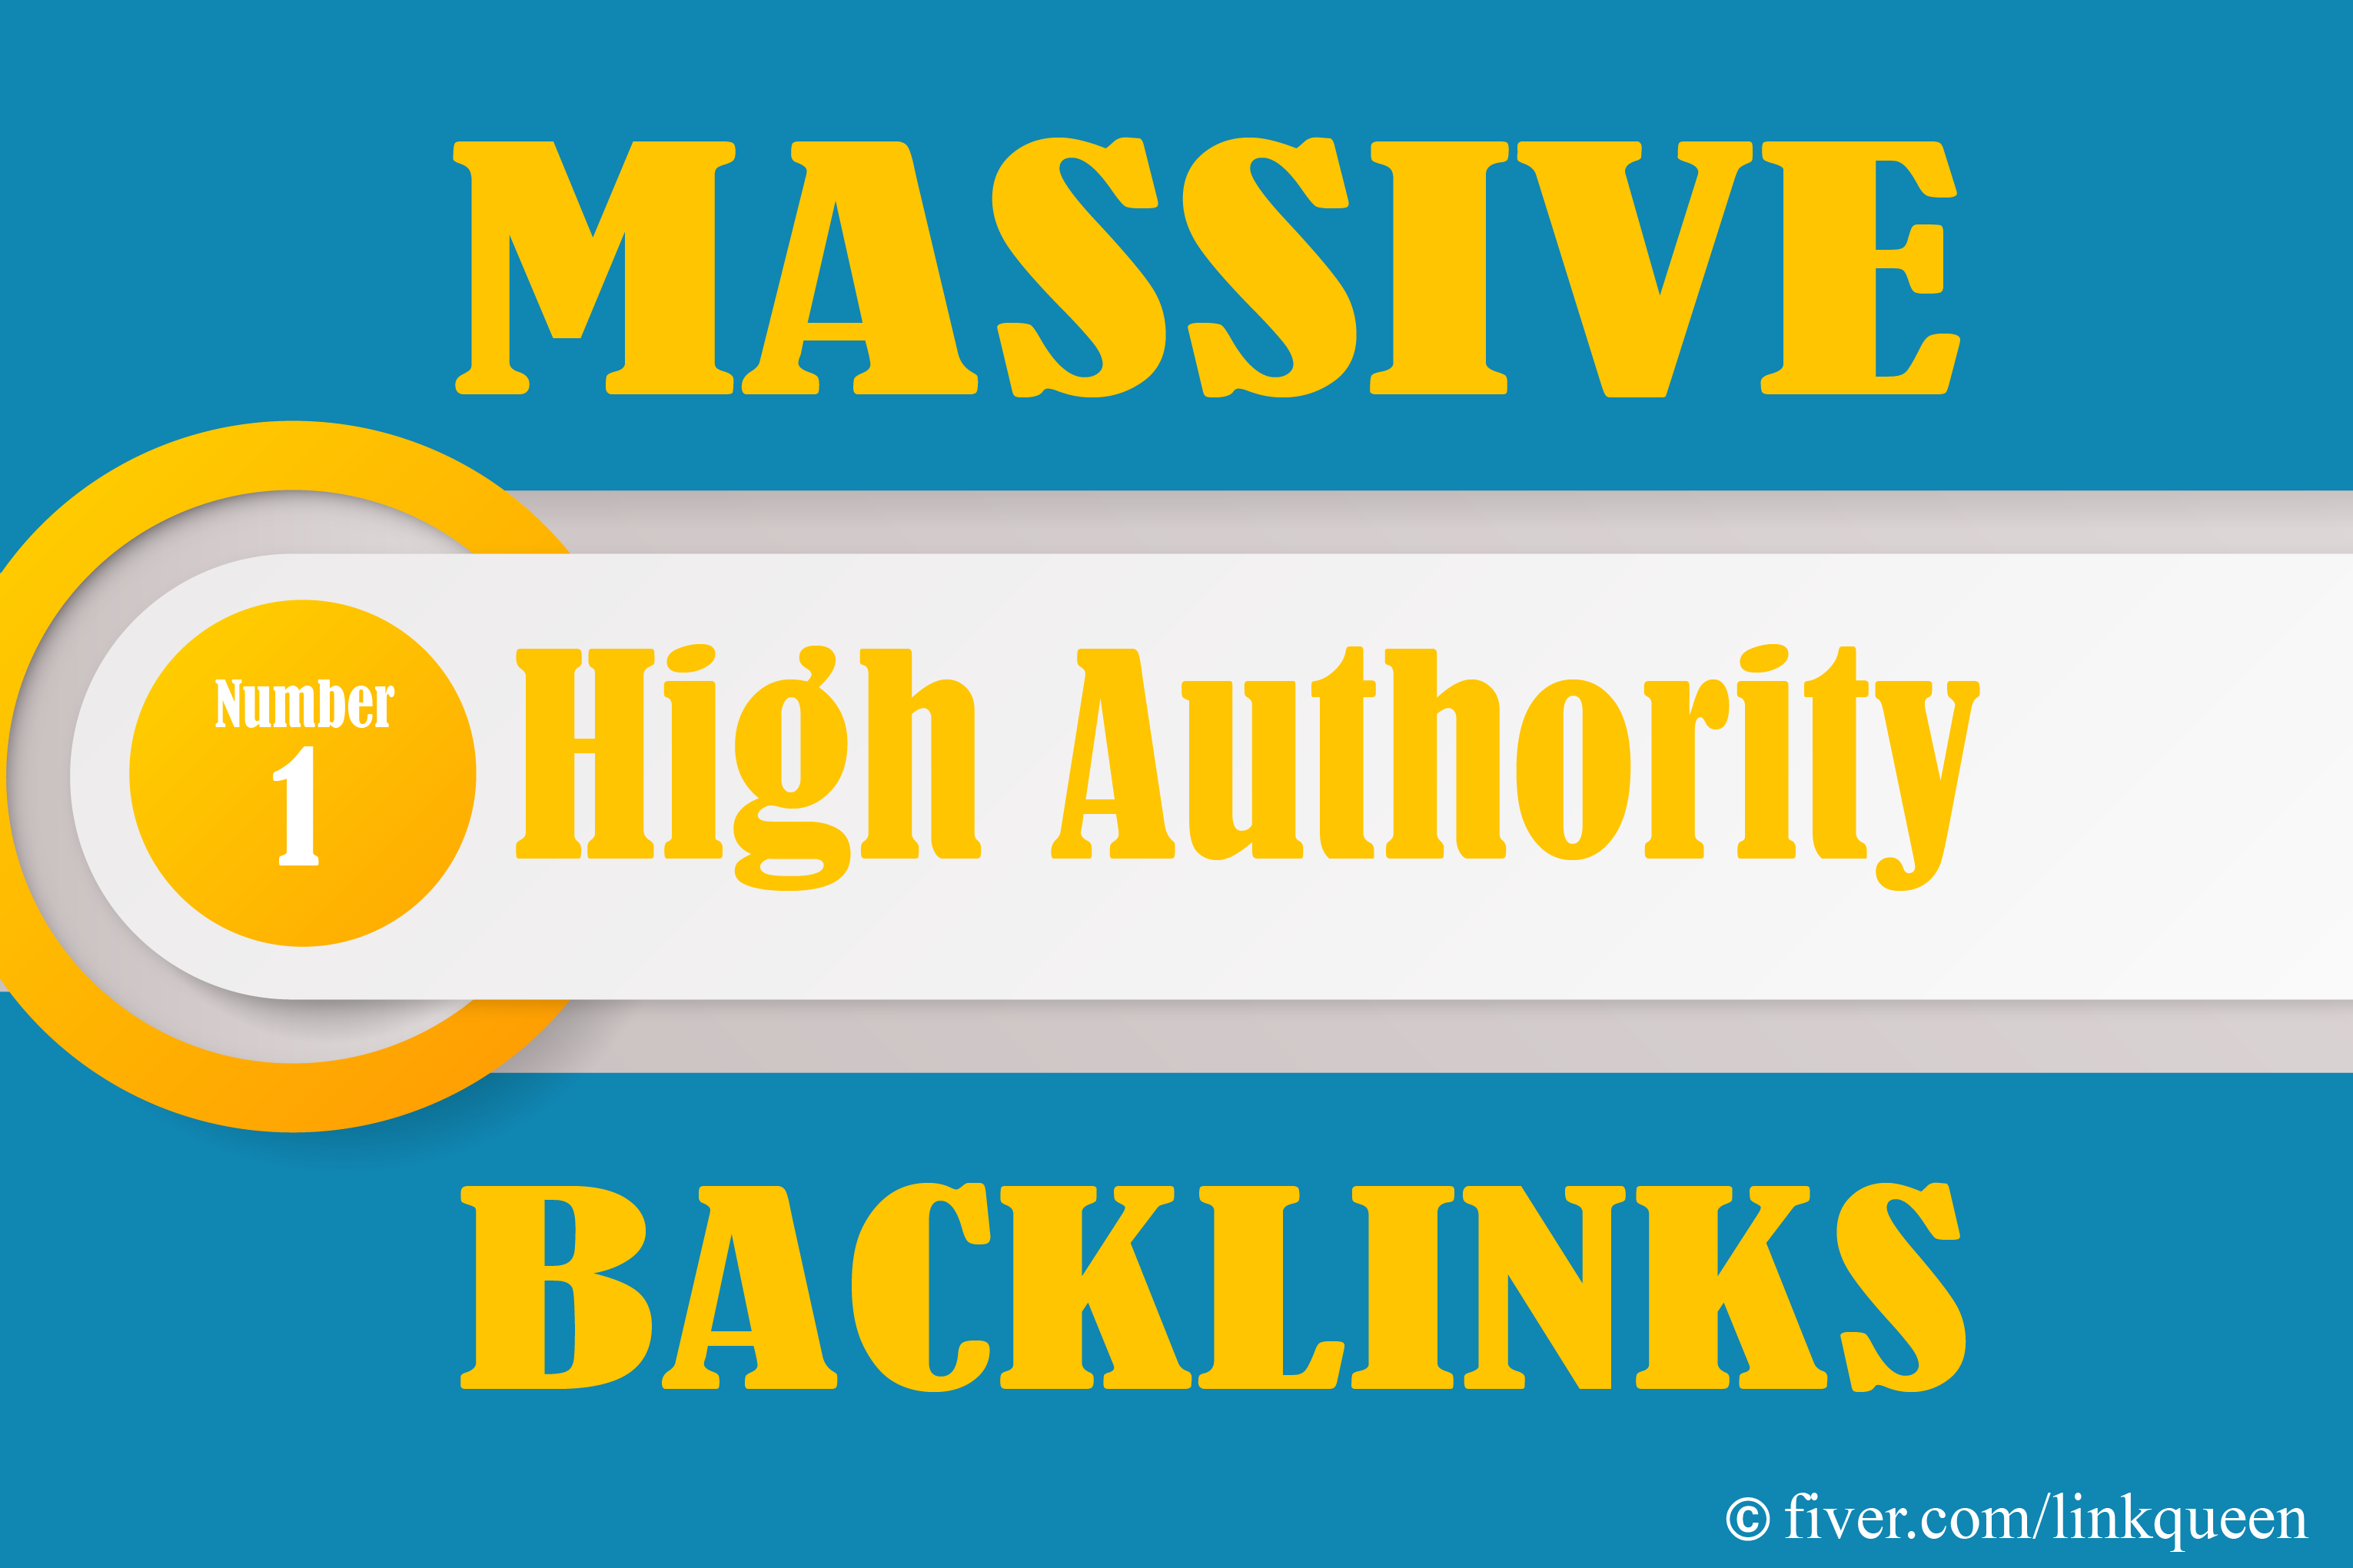 Create 30 High Authority Backlinks To Boost Your Google SEO